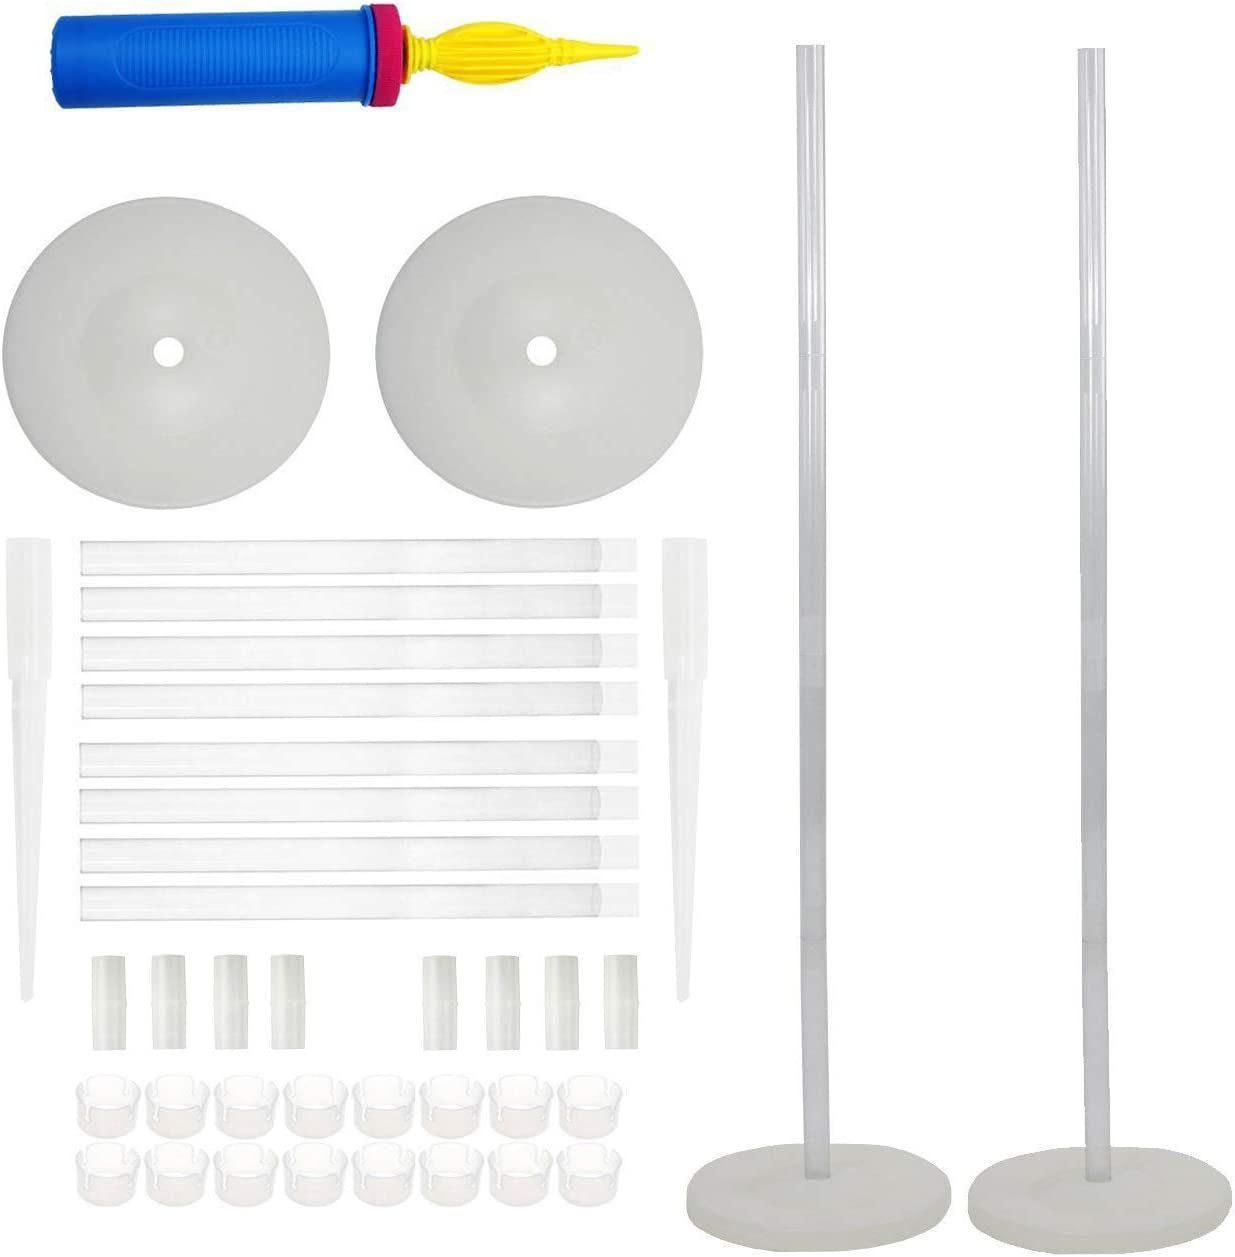 LANGXUN 2 Sets 50-inch High DIY Balloon Column Stand Kits For Birthday Decorations, Wedding Decorations, Party Decorations, Christmas Balloon Decorations (Column Stand)